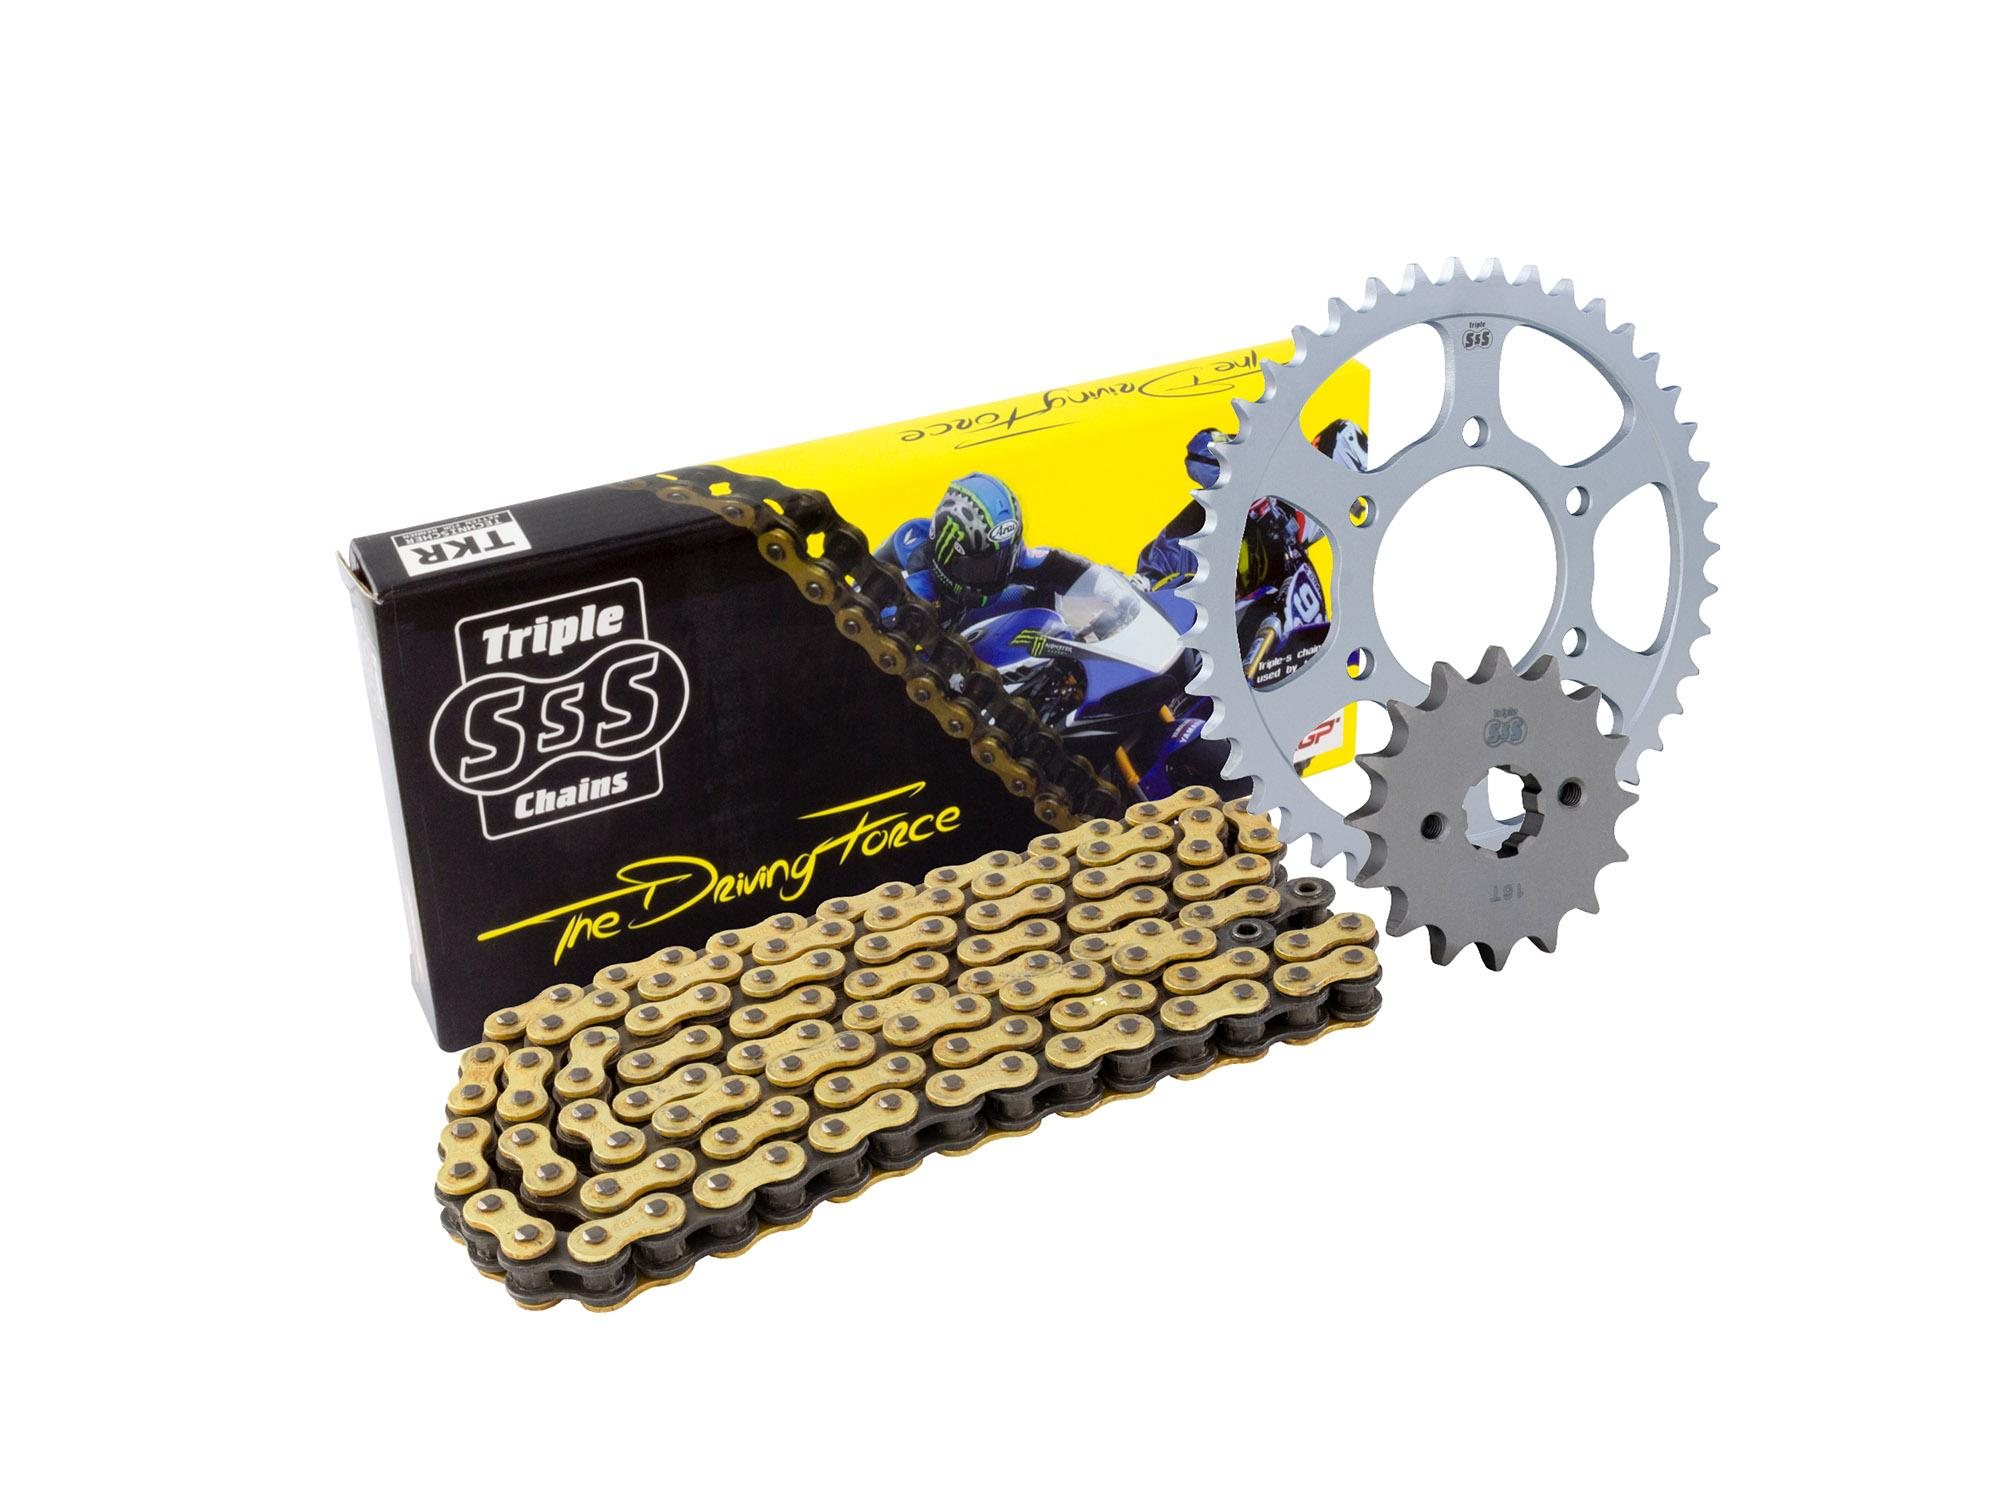 BMW S1000 RR 09-10 Chain & Sprocket Kit: 17T Front, 44T Rear, HD O-Ring Gold Chain 525H 118Link